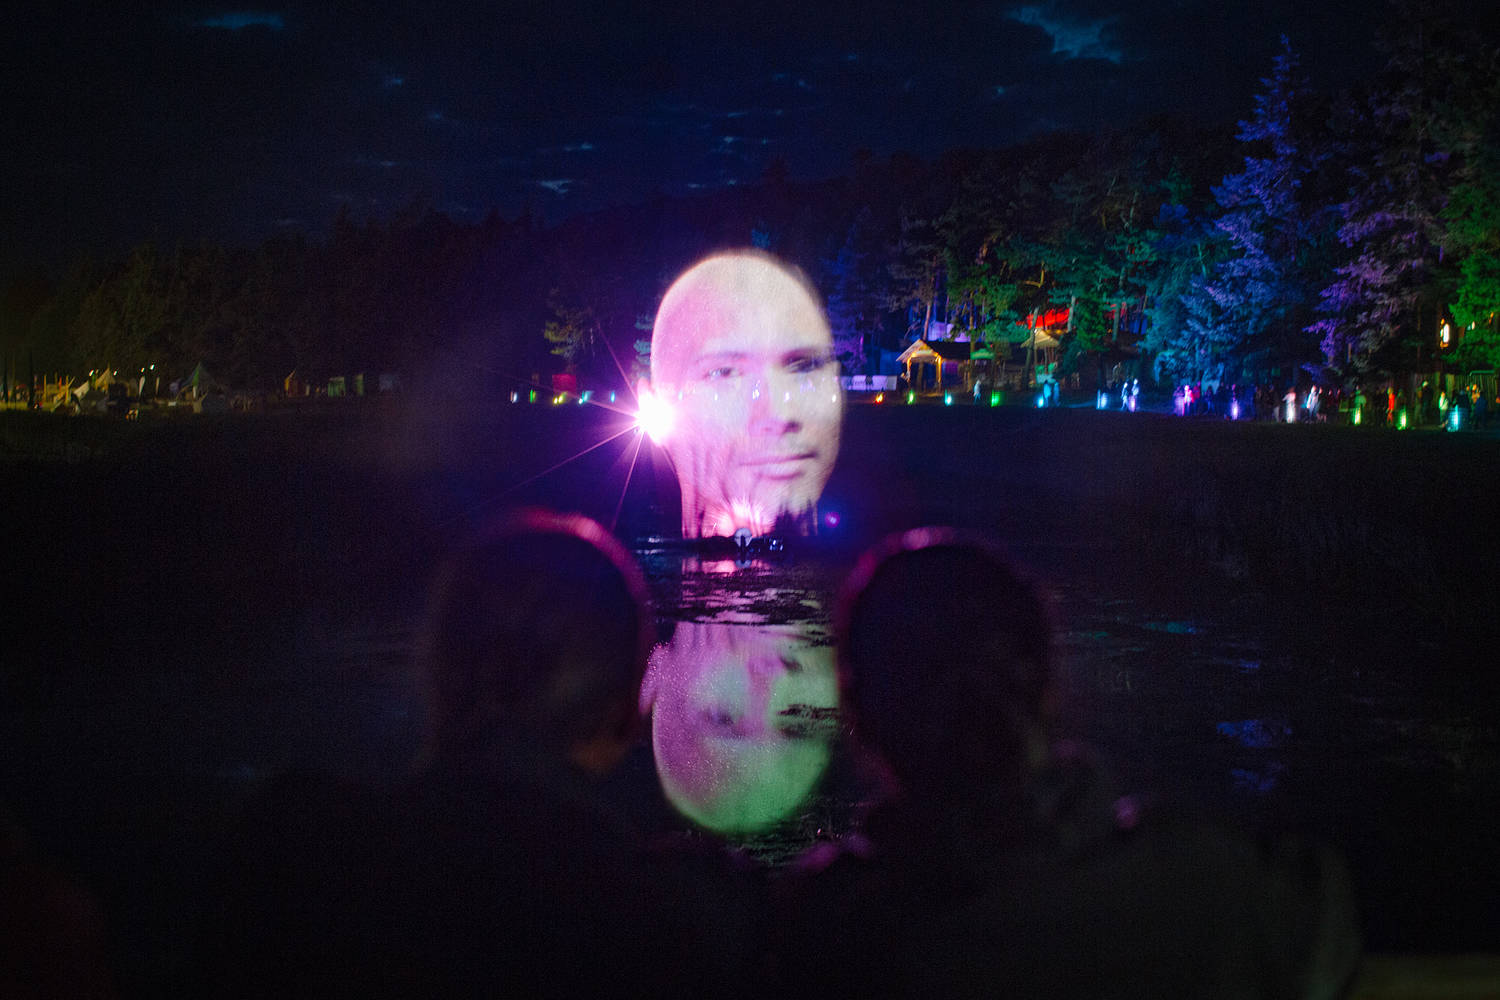 latitude festival 2016308 water head image.jpg